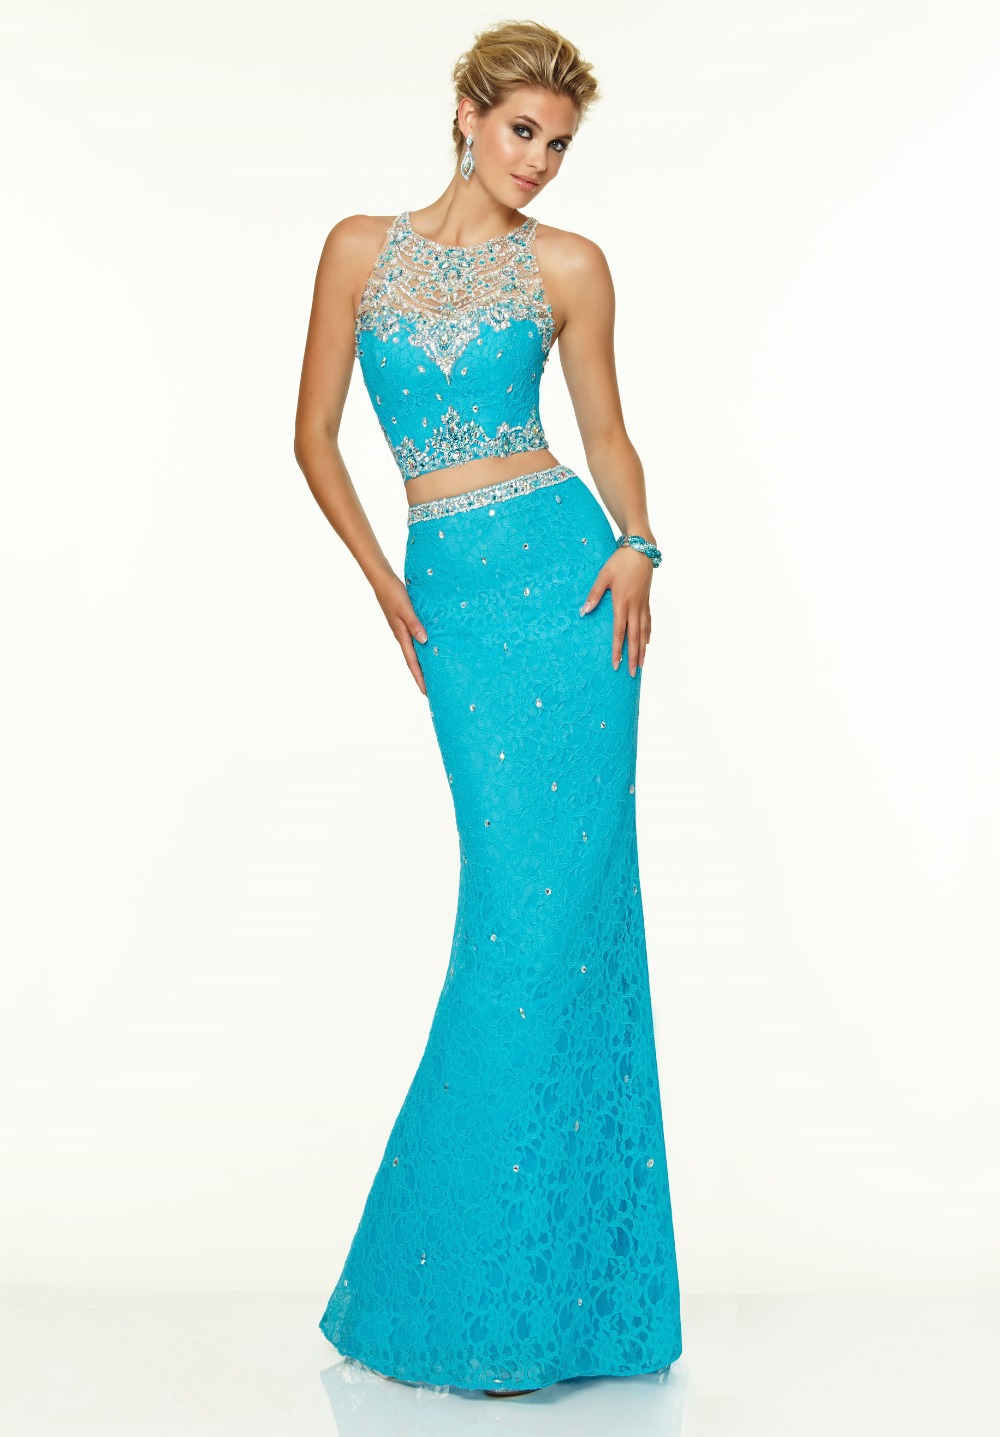 Custom made Halter Neck Exquisite Crystal Beading Lace Mermaid Design Two Piece 2018 Modest Formal Gowns bridesmaid dresses